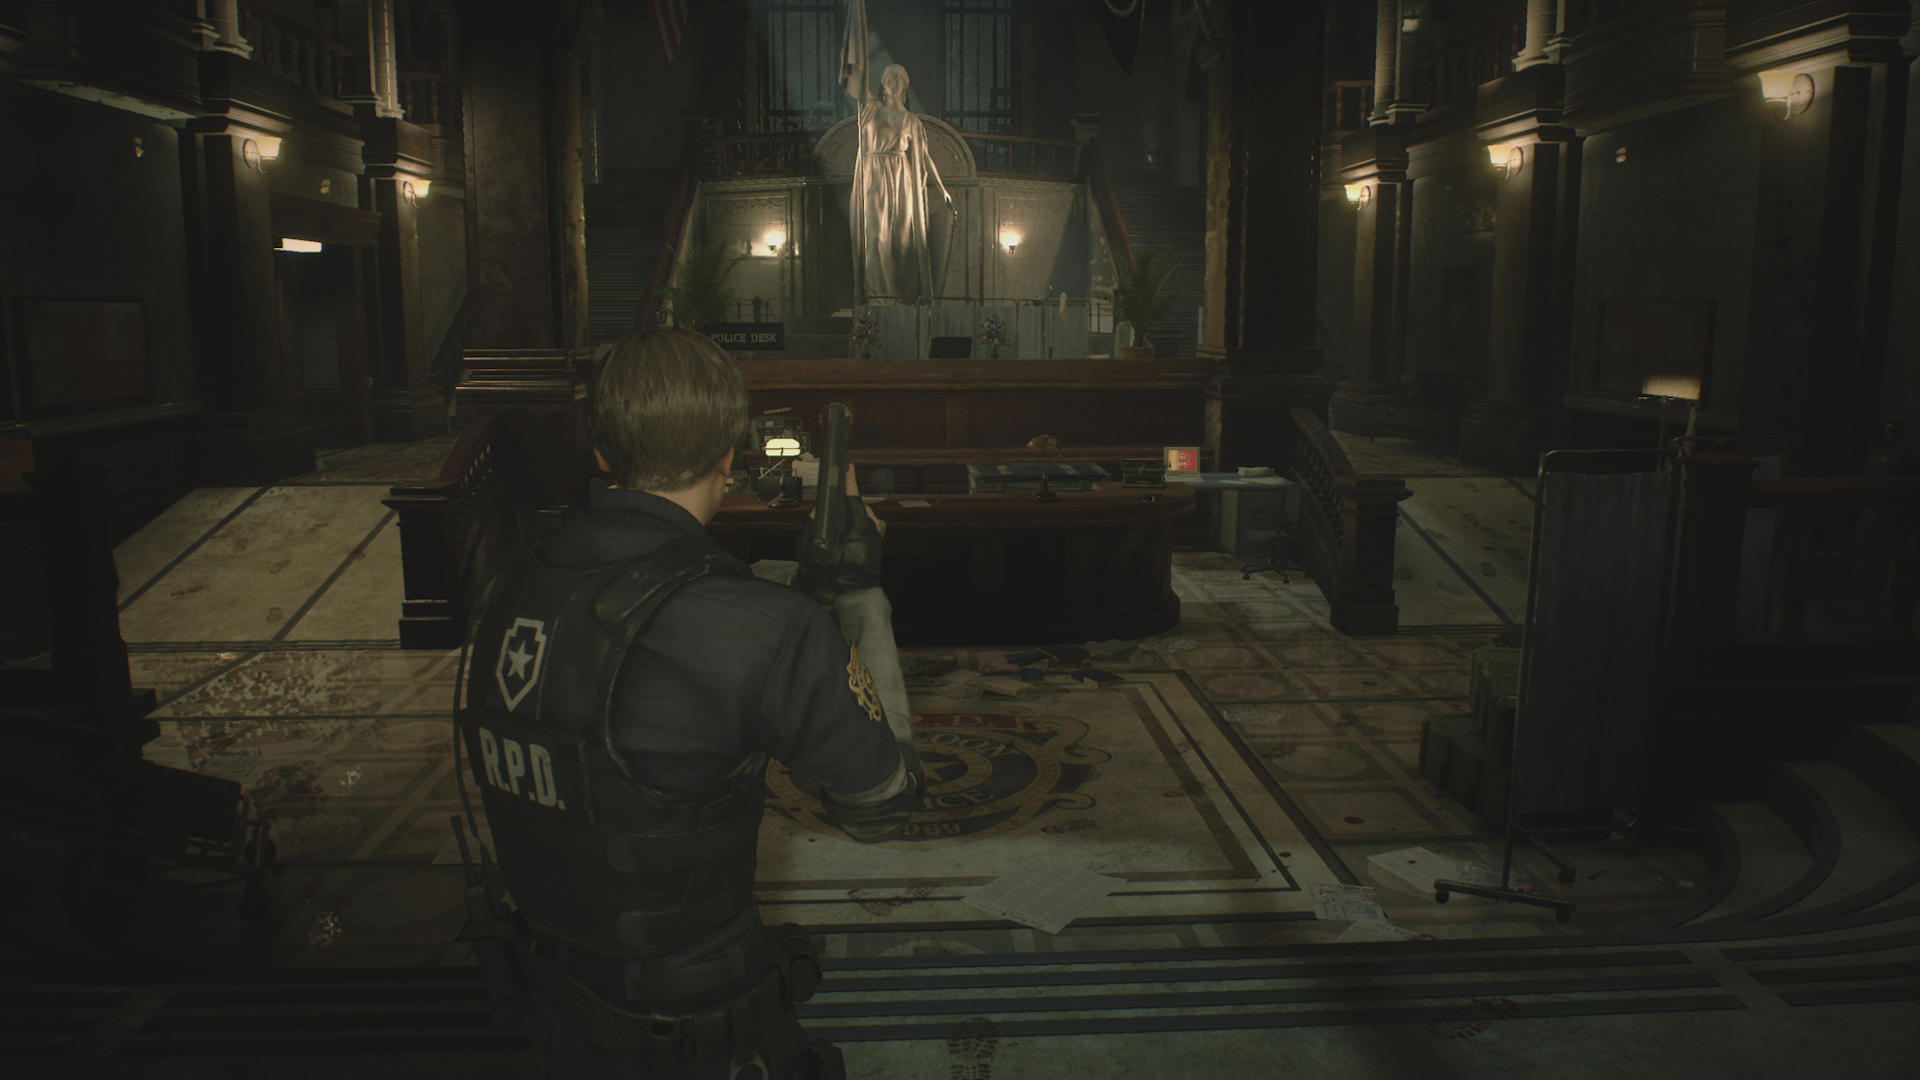 Resident Evil 2 Remake takes Capcom's RE engine to the next level